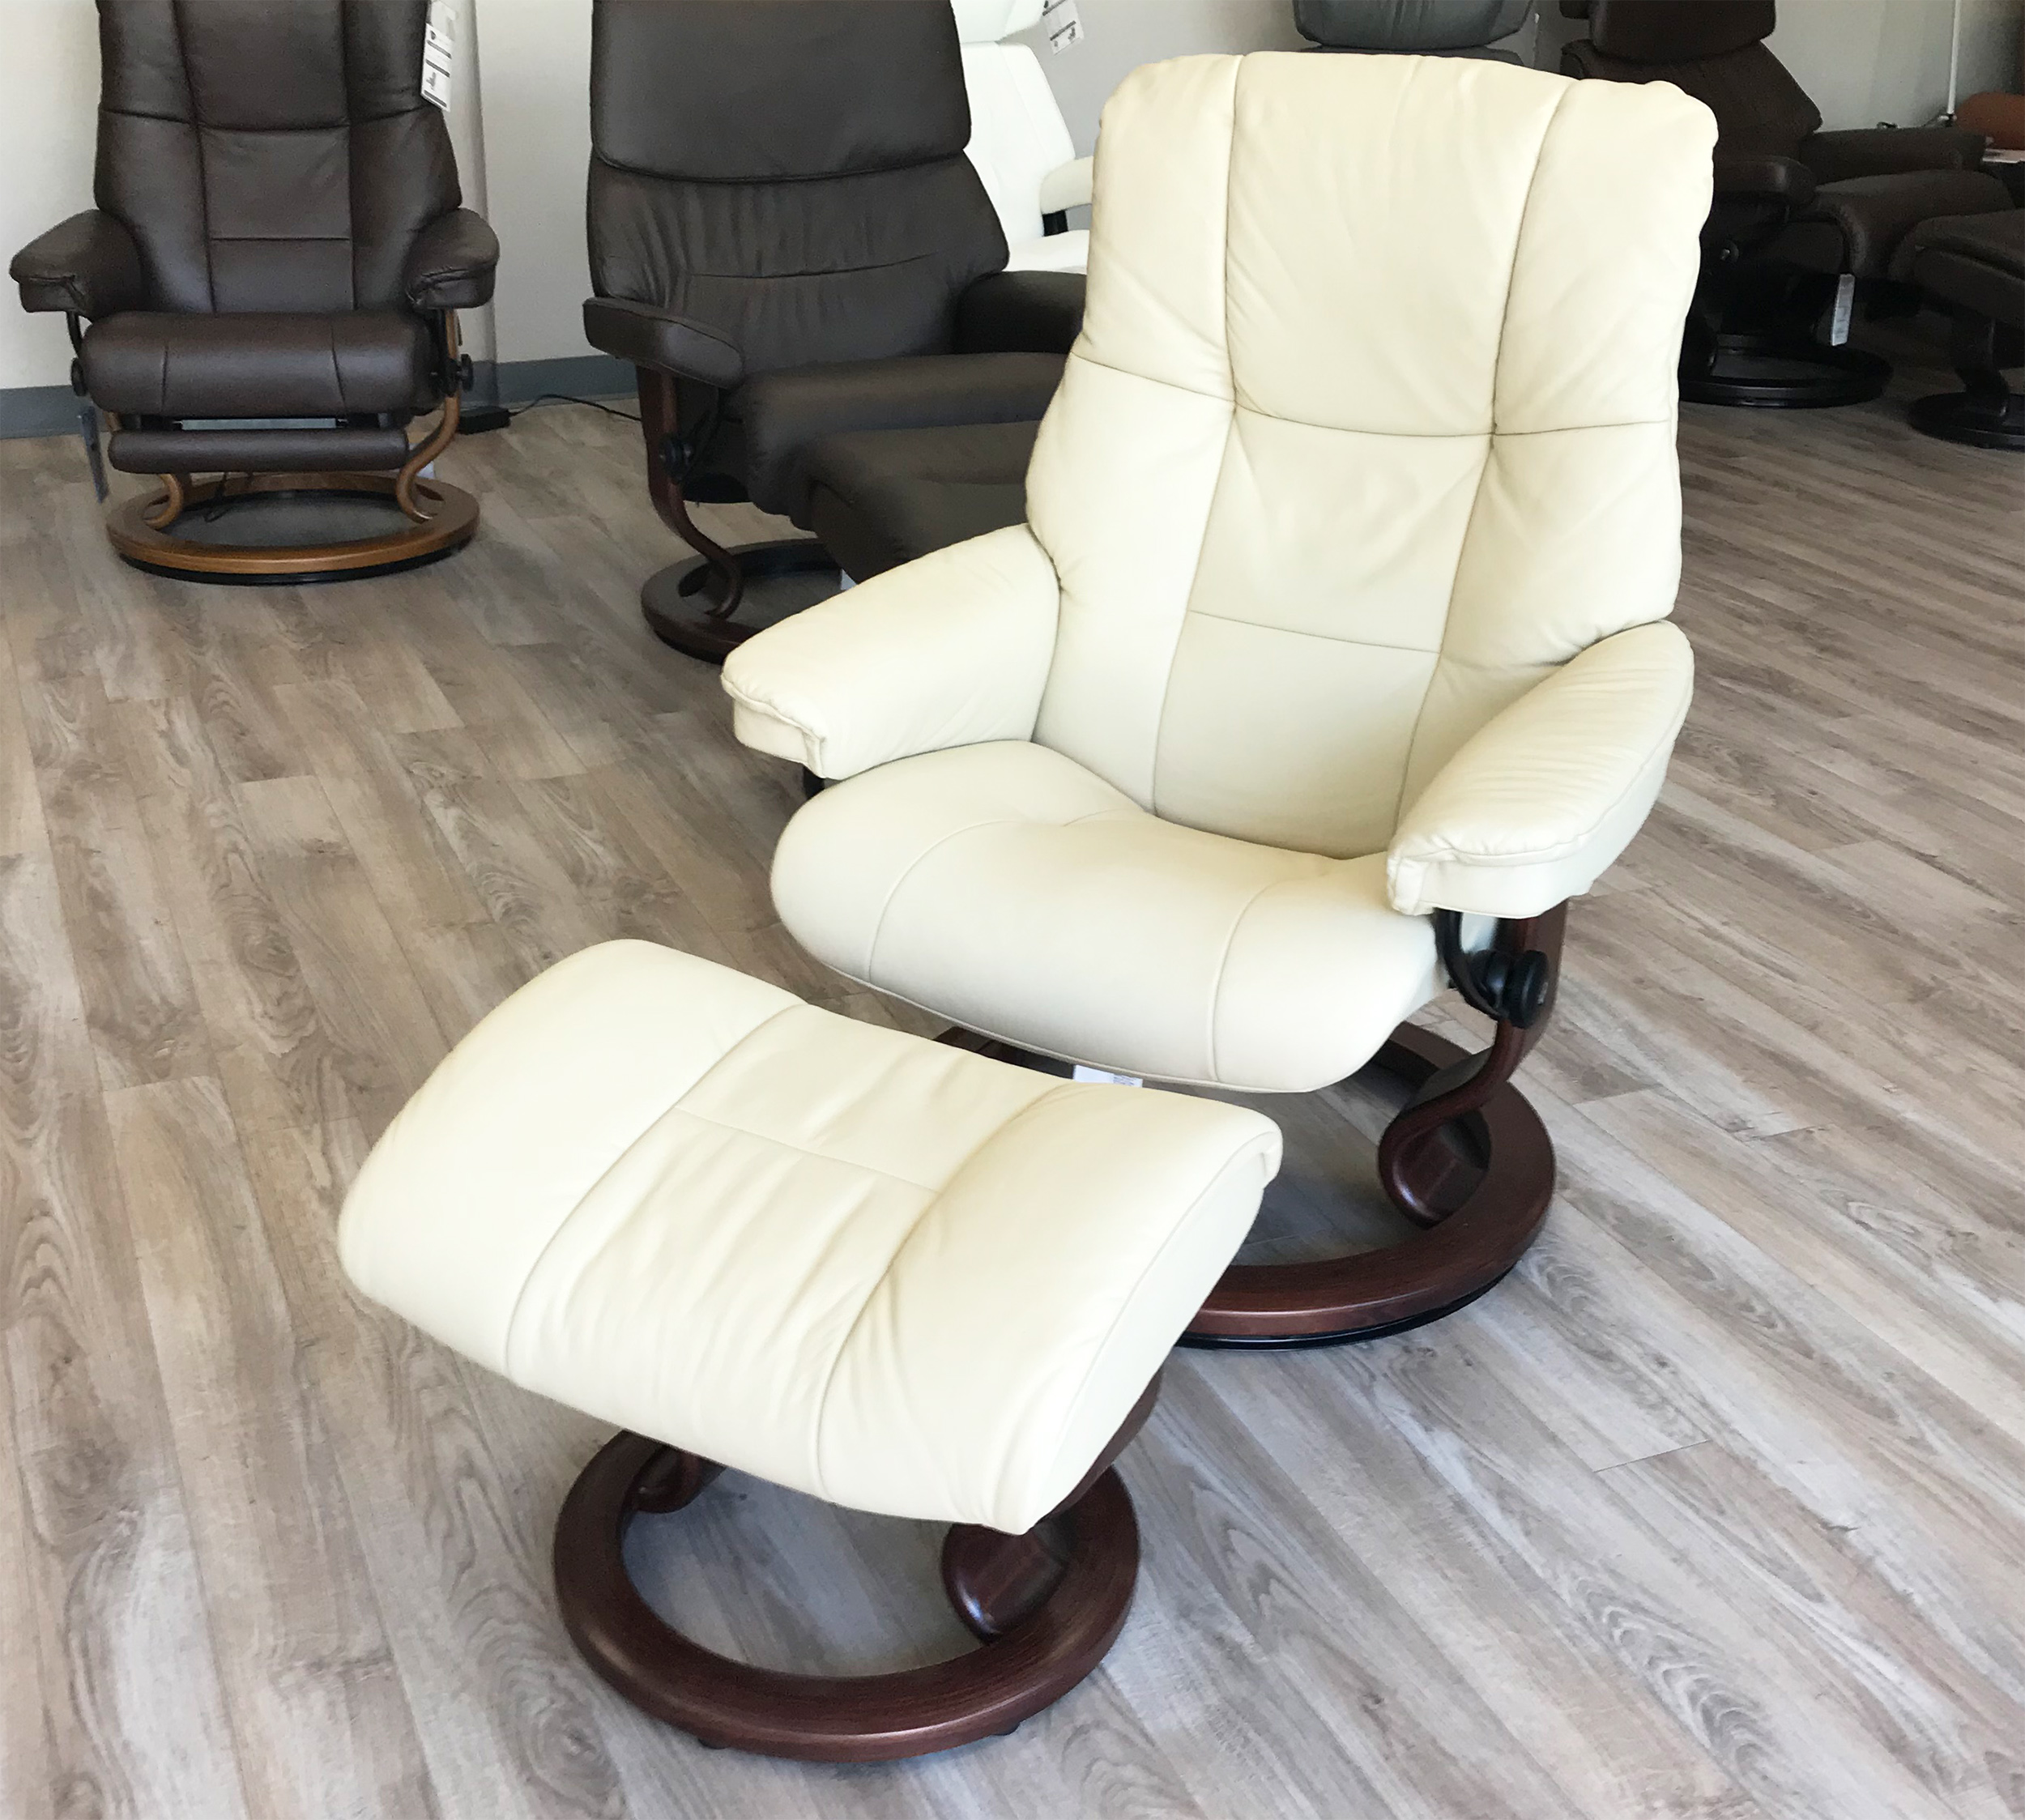 Stressless Recliners With Ottoman Stressless Chelsea Small Mayfair Paloma Kitt Leather